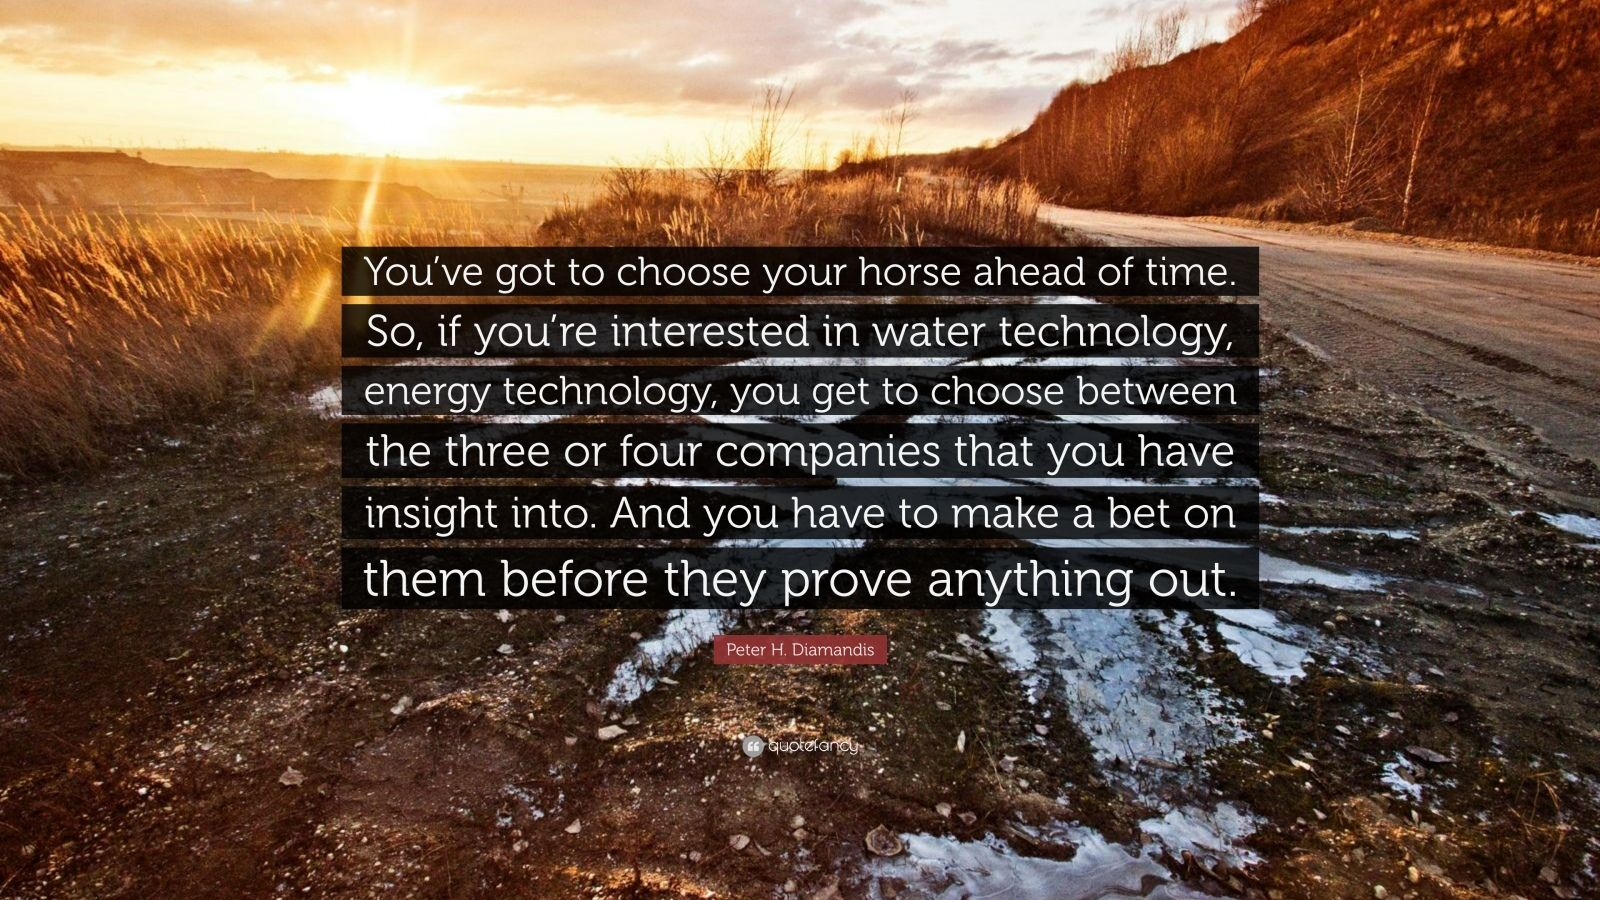 "Peter H. Diamandis Quote: ""You've got to choose your horse ahead of time. So, if you're interested in water technology, energy technology, you get to choose between the three or four companies that you have insight into. And you have to make a bet on them before they prove anything out."""